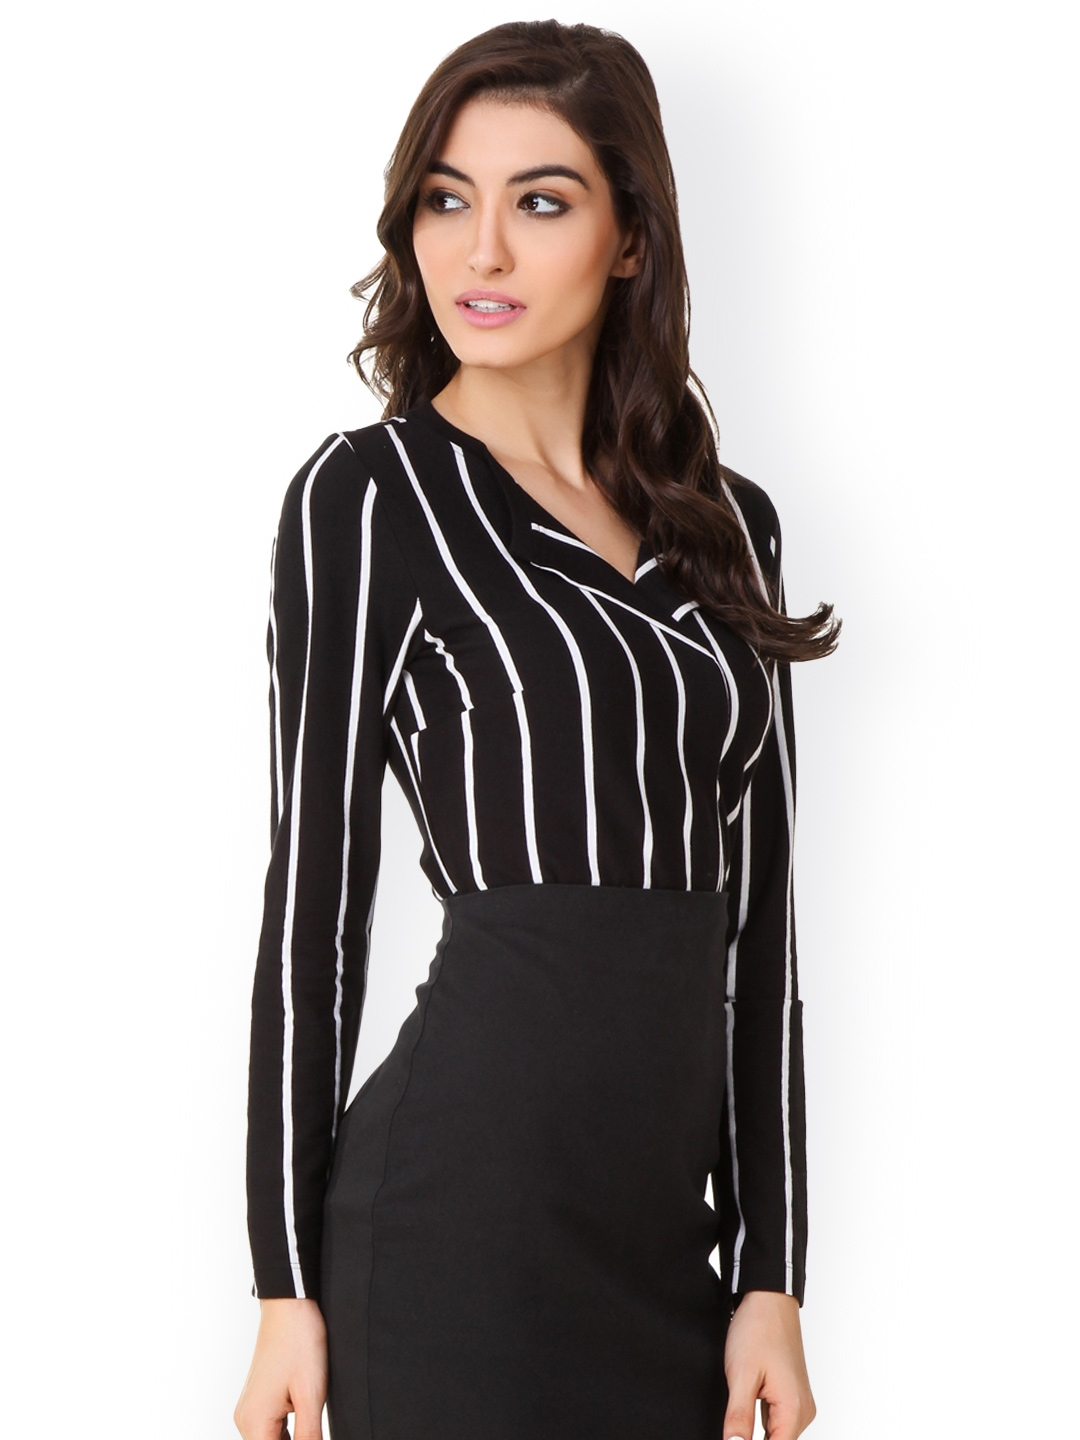 3894f94aa59 Buy Texco Women Black   White Striped Formal Shirt - Shirts for ...